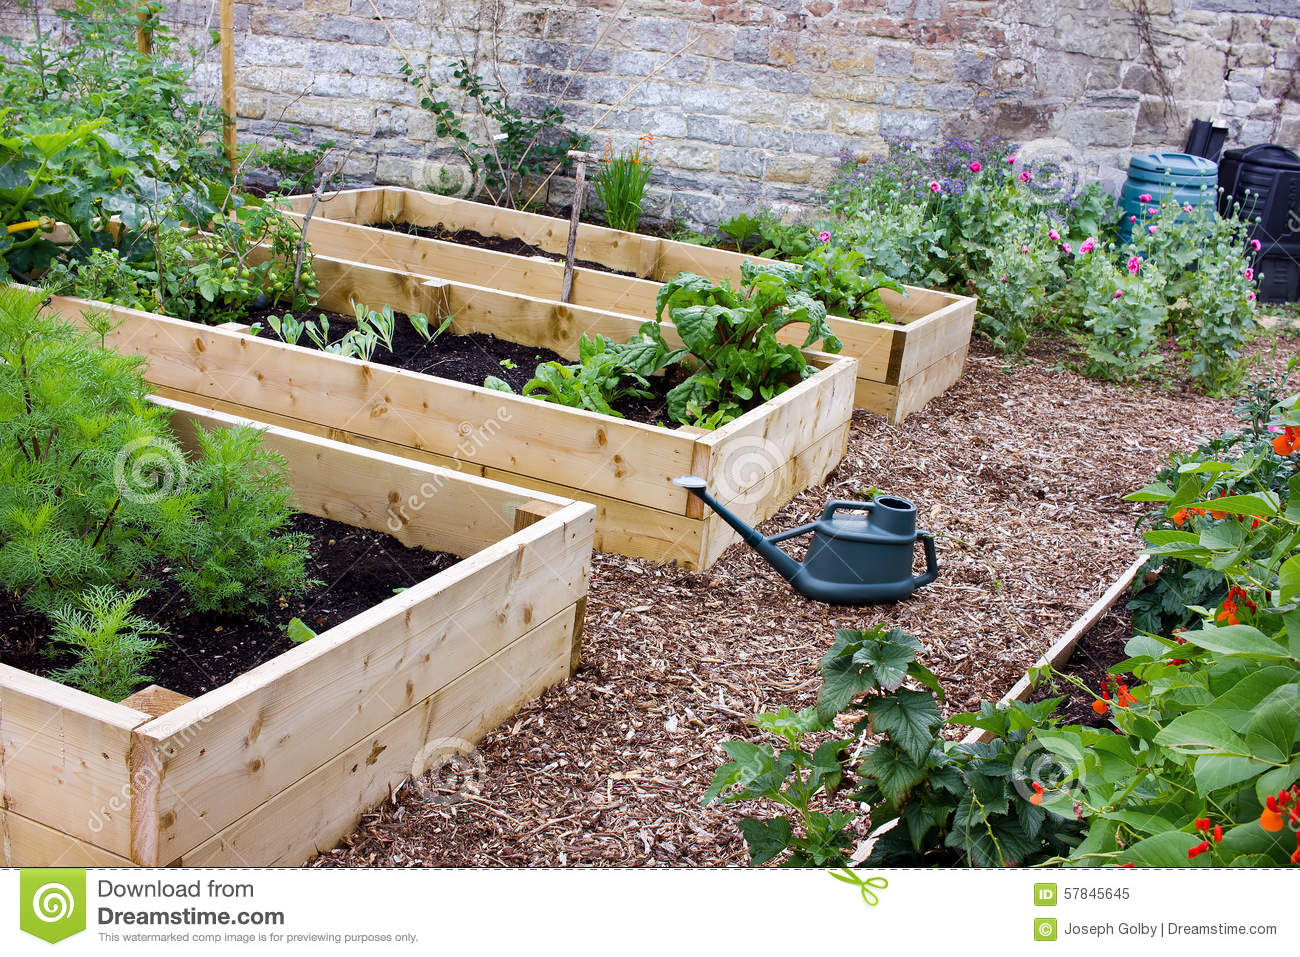 Rustic Country Vegetable Flower Garden With Raised Beds Spade Watering Can Composters